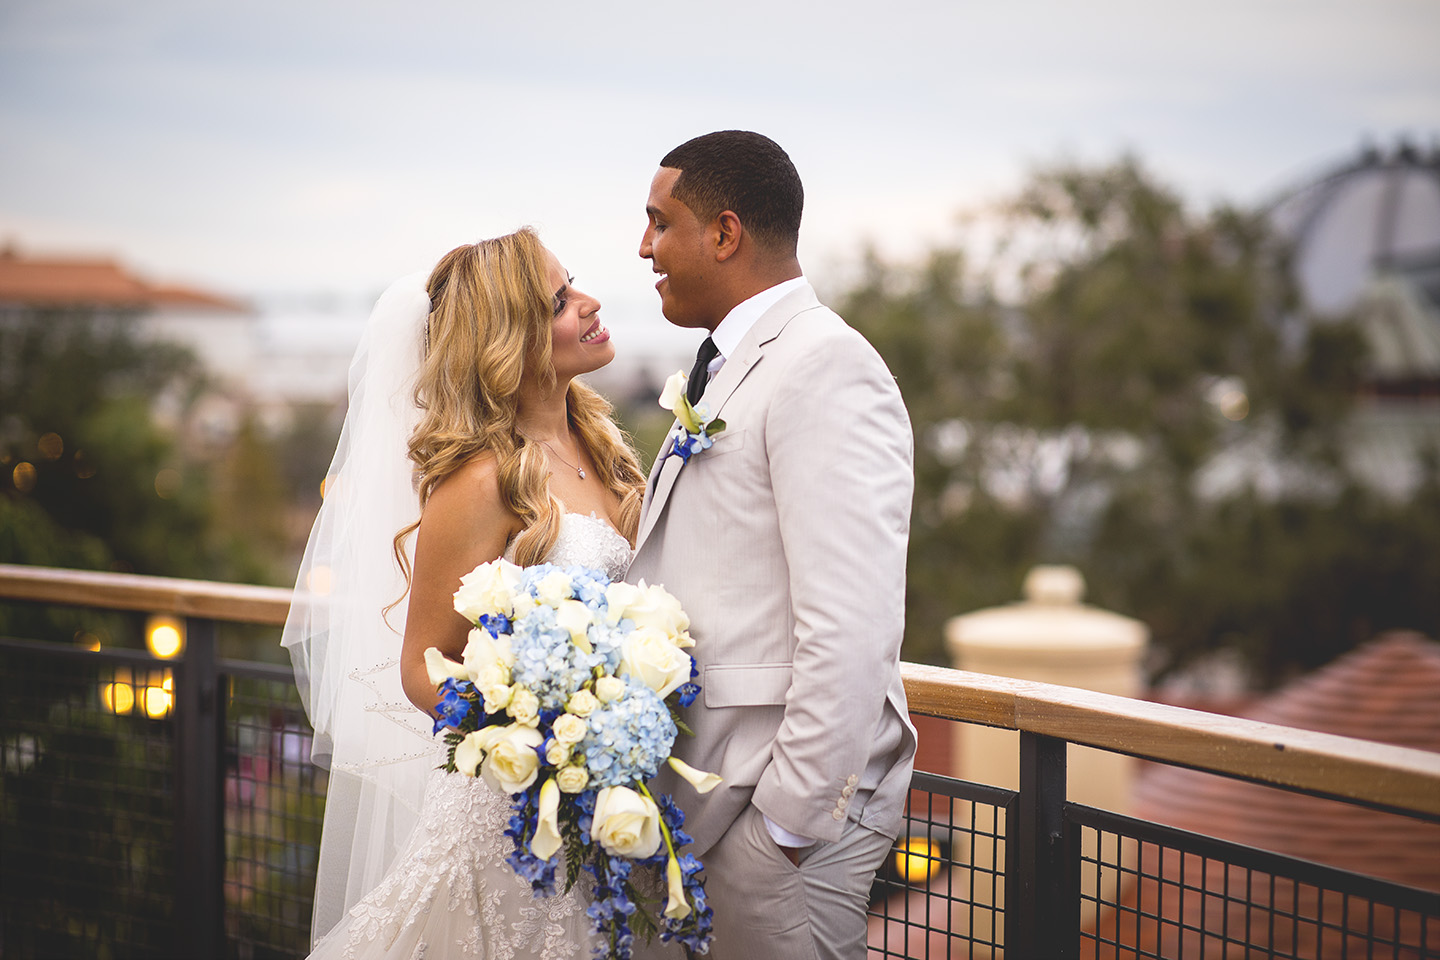 Central Florida wedding photographer, Sarah Rose Photography. Paddlefish Orlando